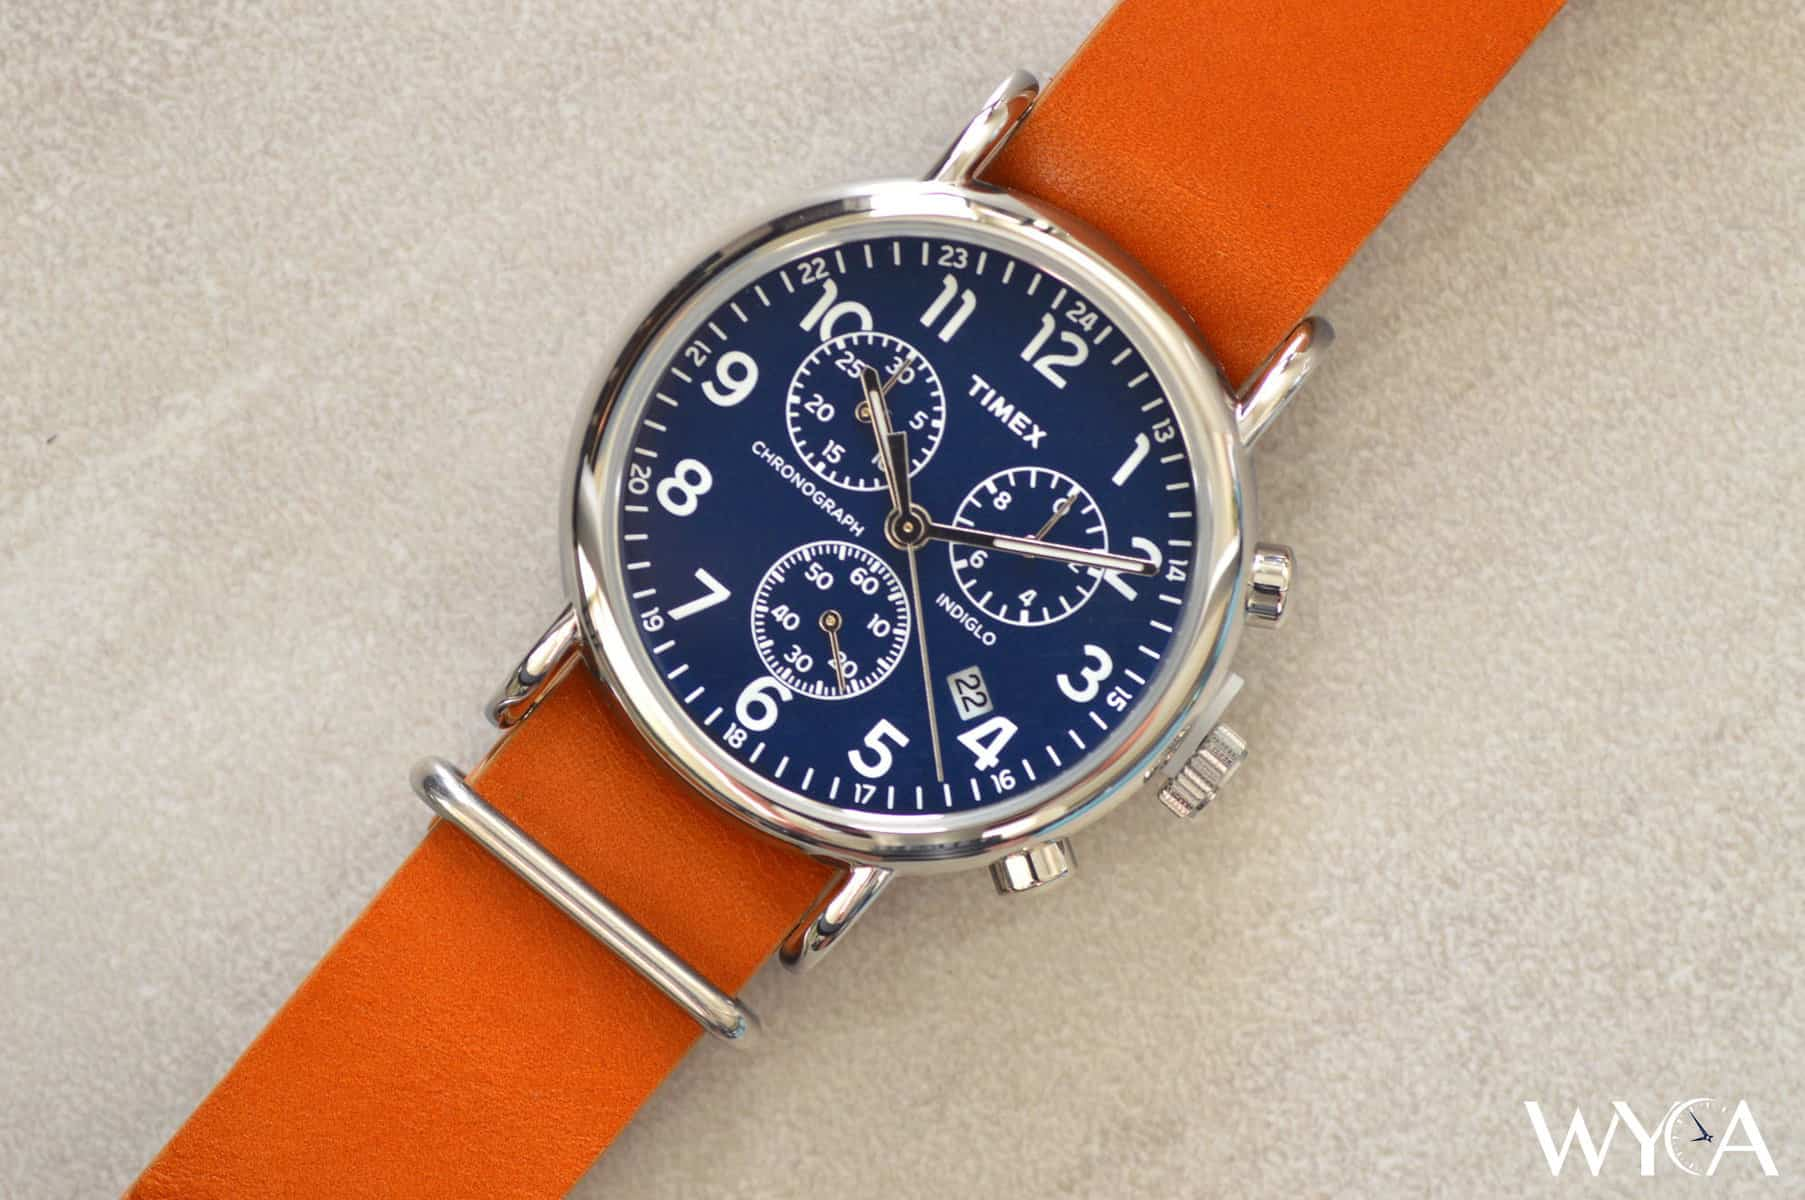 eef9f1209 Timex Weekender Chronograph Review | Reviews by WYCA